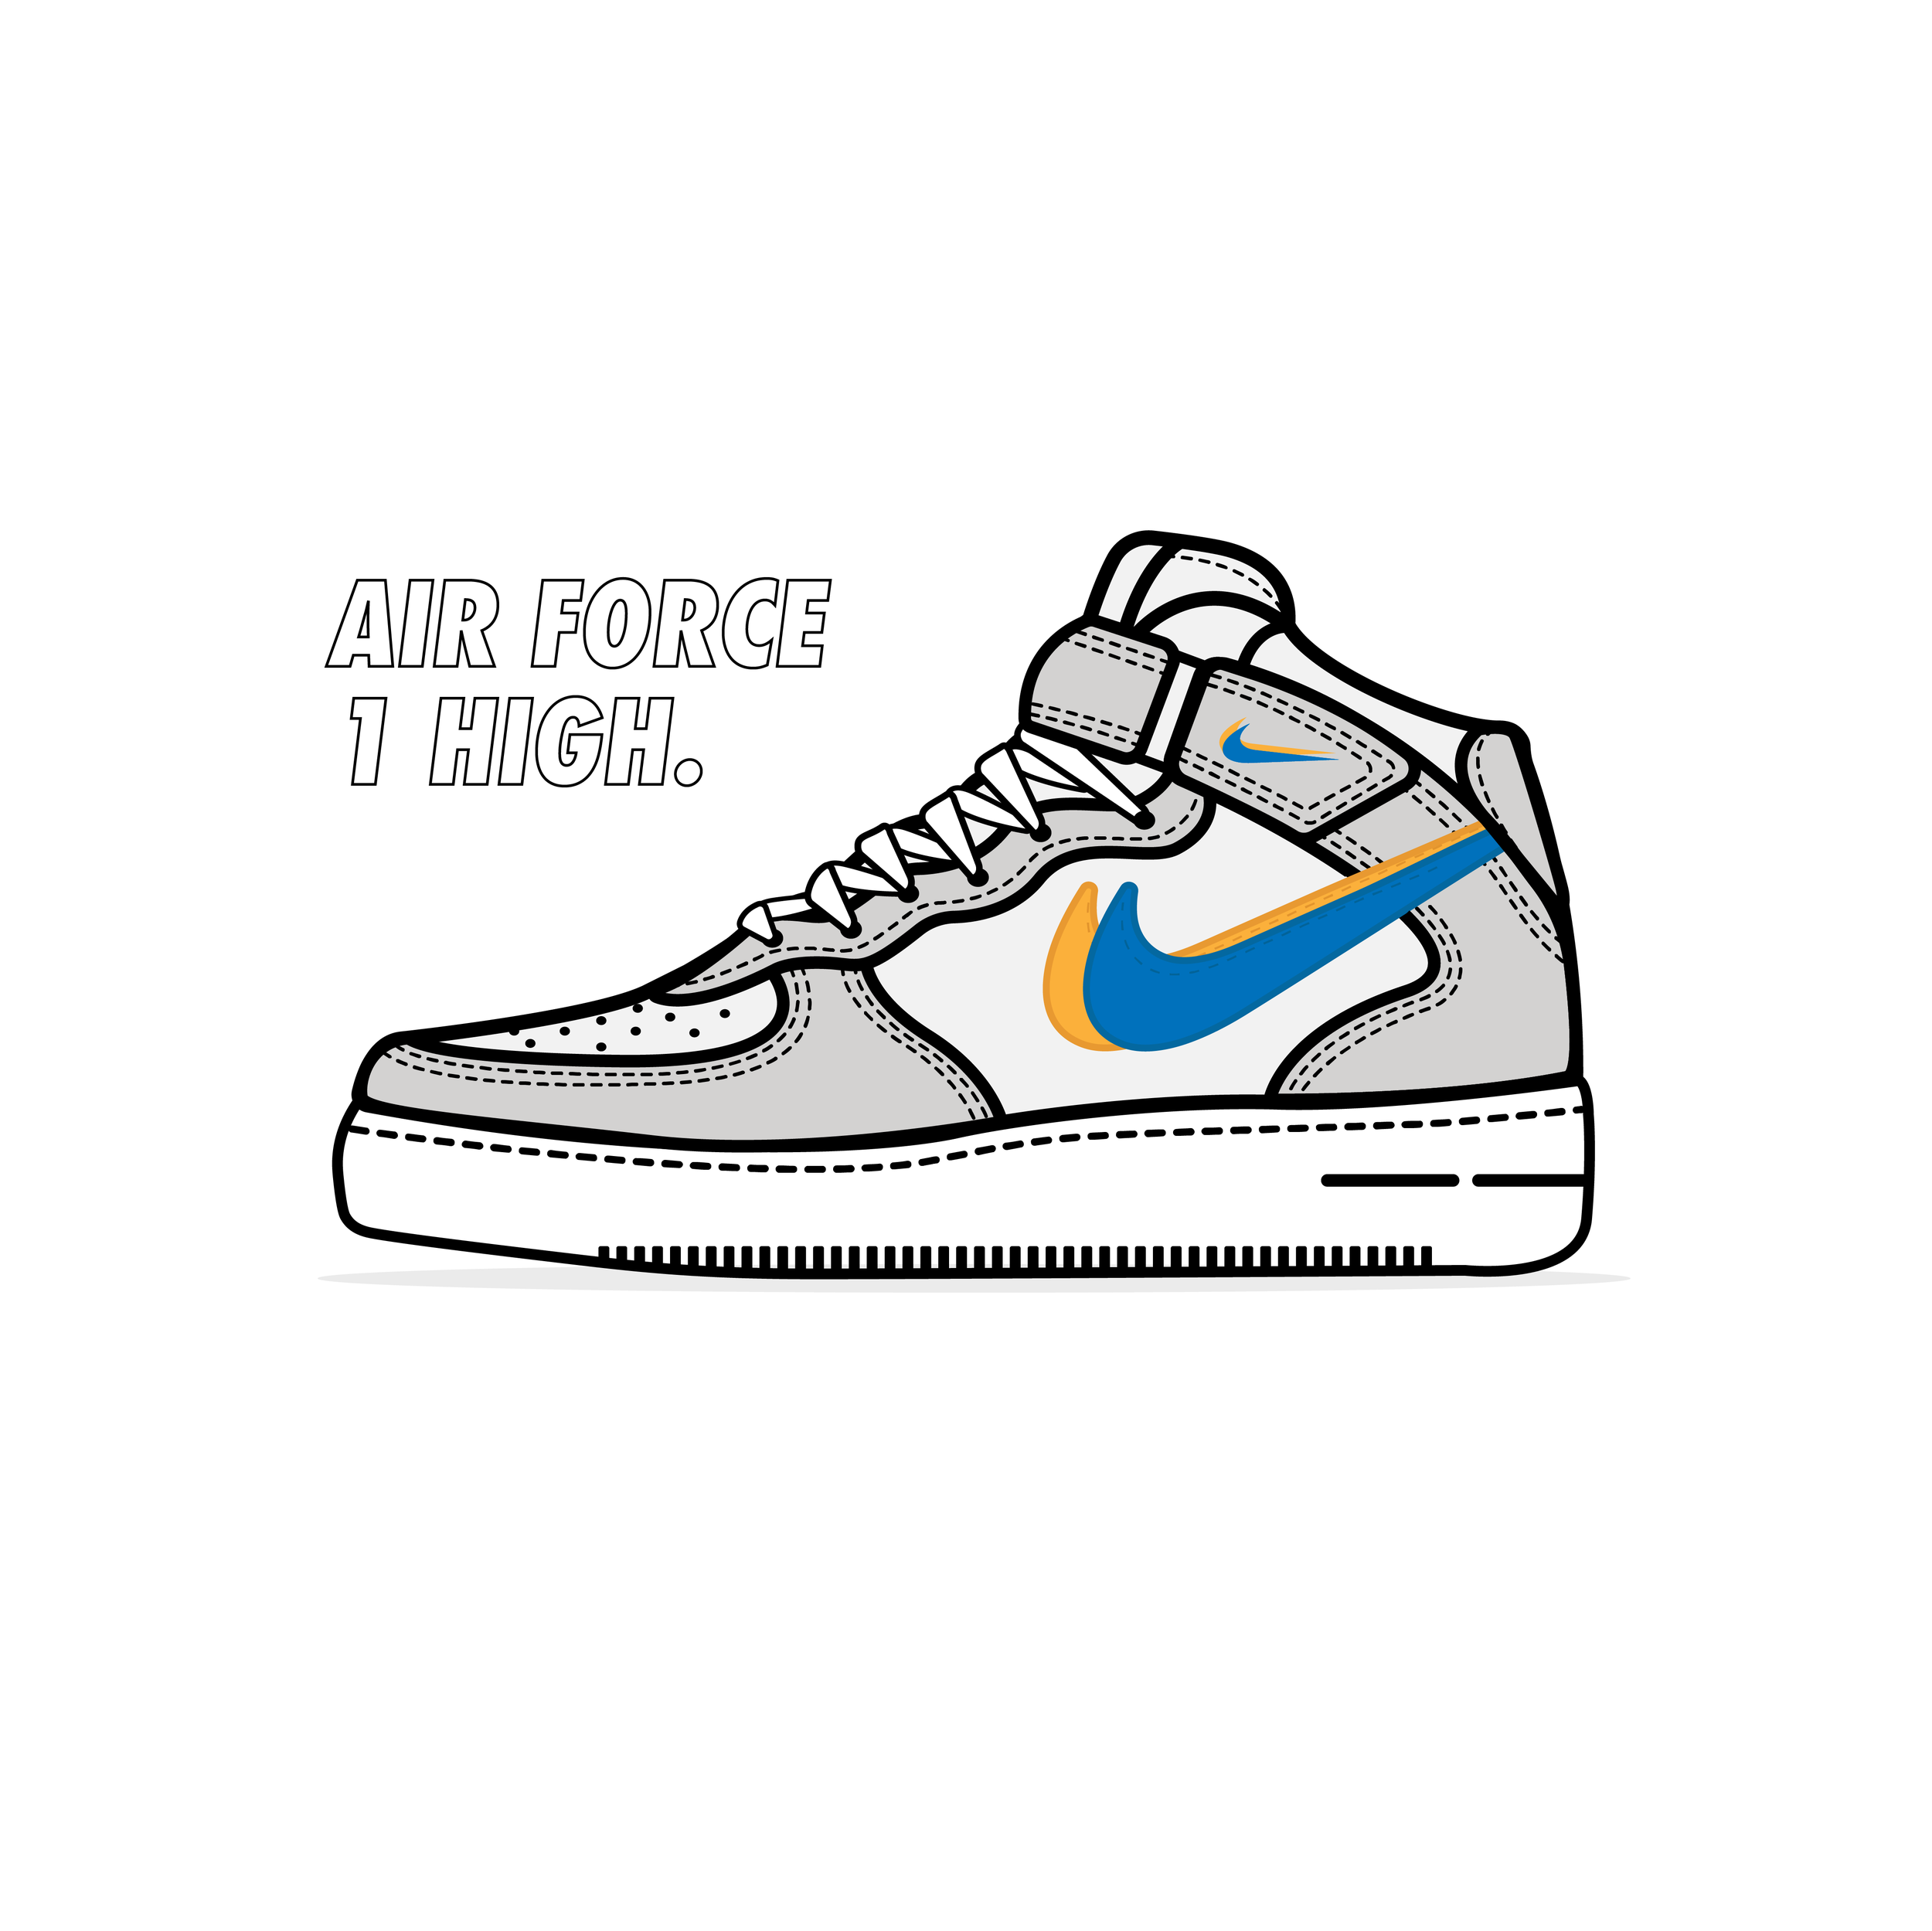 NIKE_TOGETHER_Deliverables-03.png